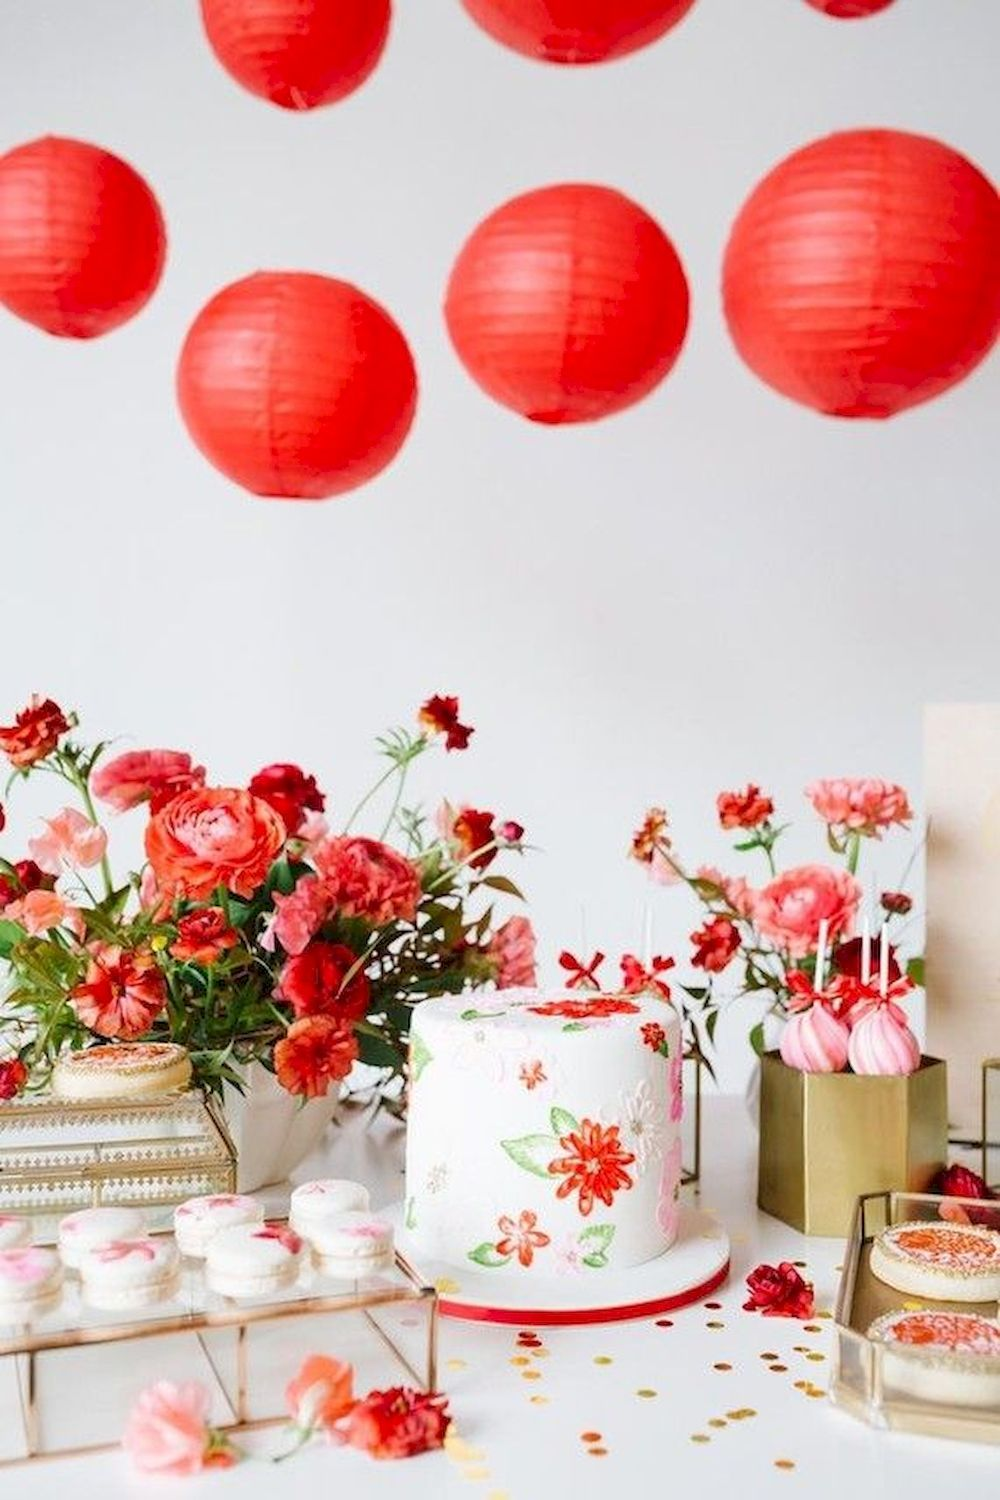 Lunar New Year Decoration Ideas | Chinese new year ...